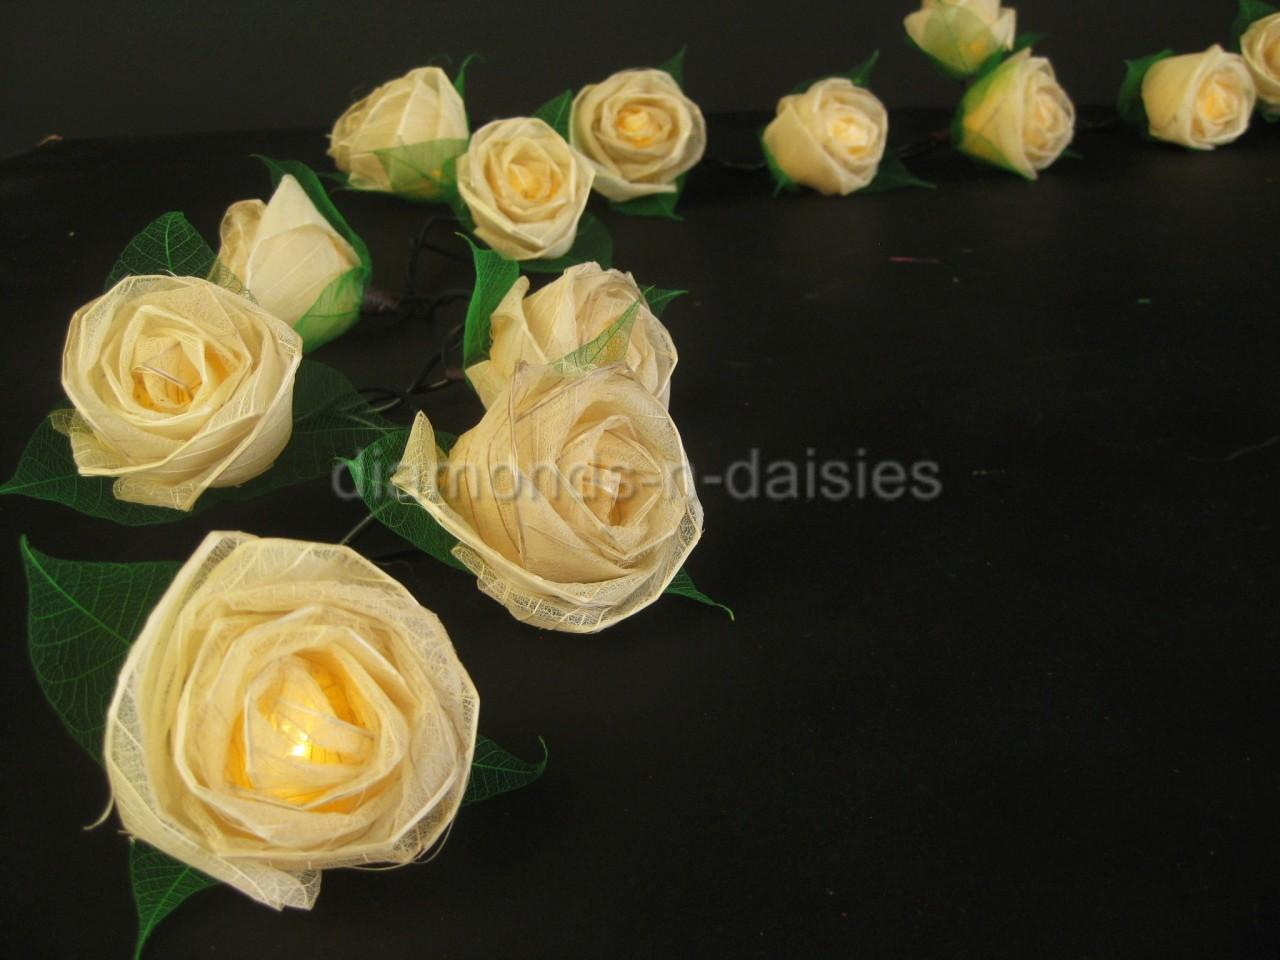 20 Cream Battery Operated Large Rose Flower Led String